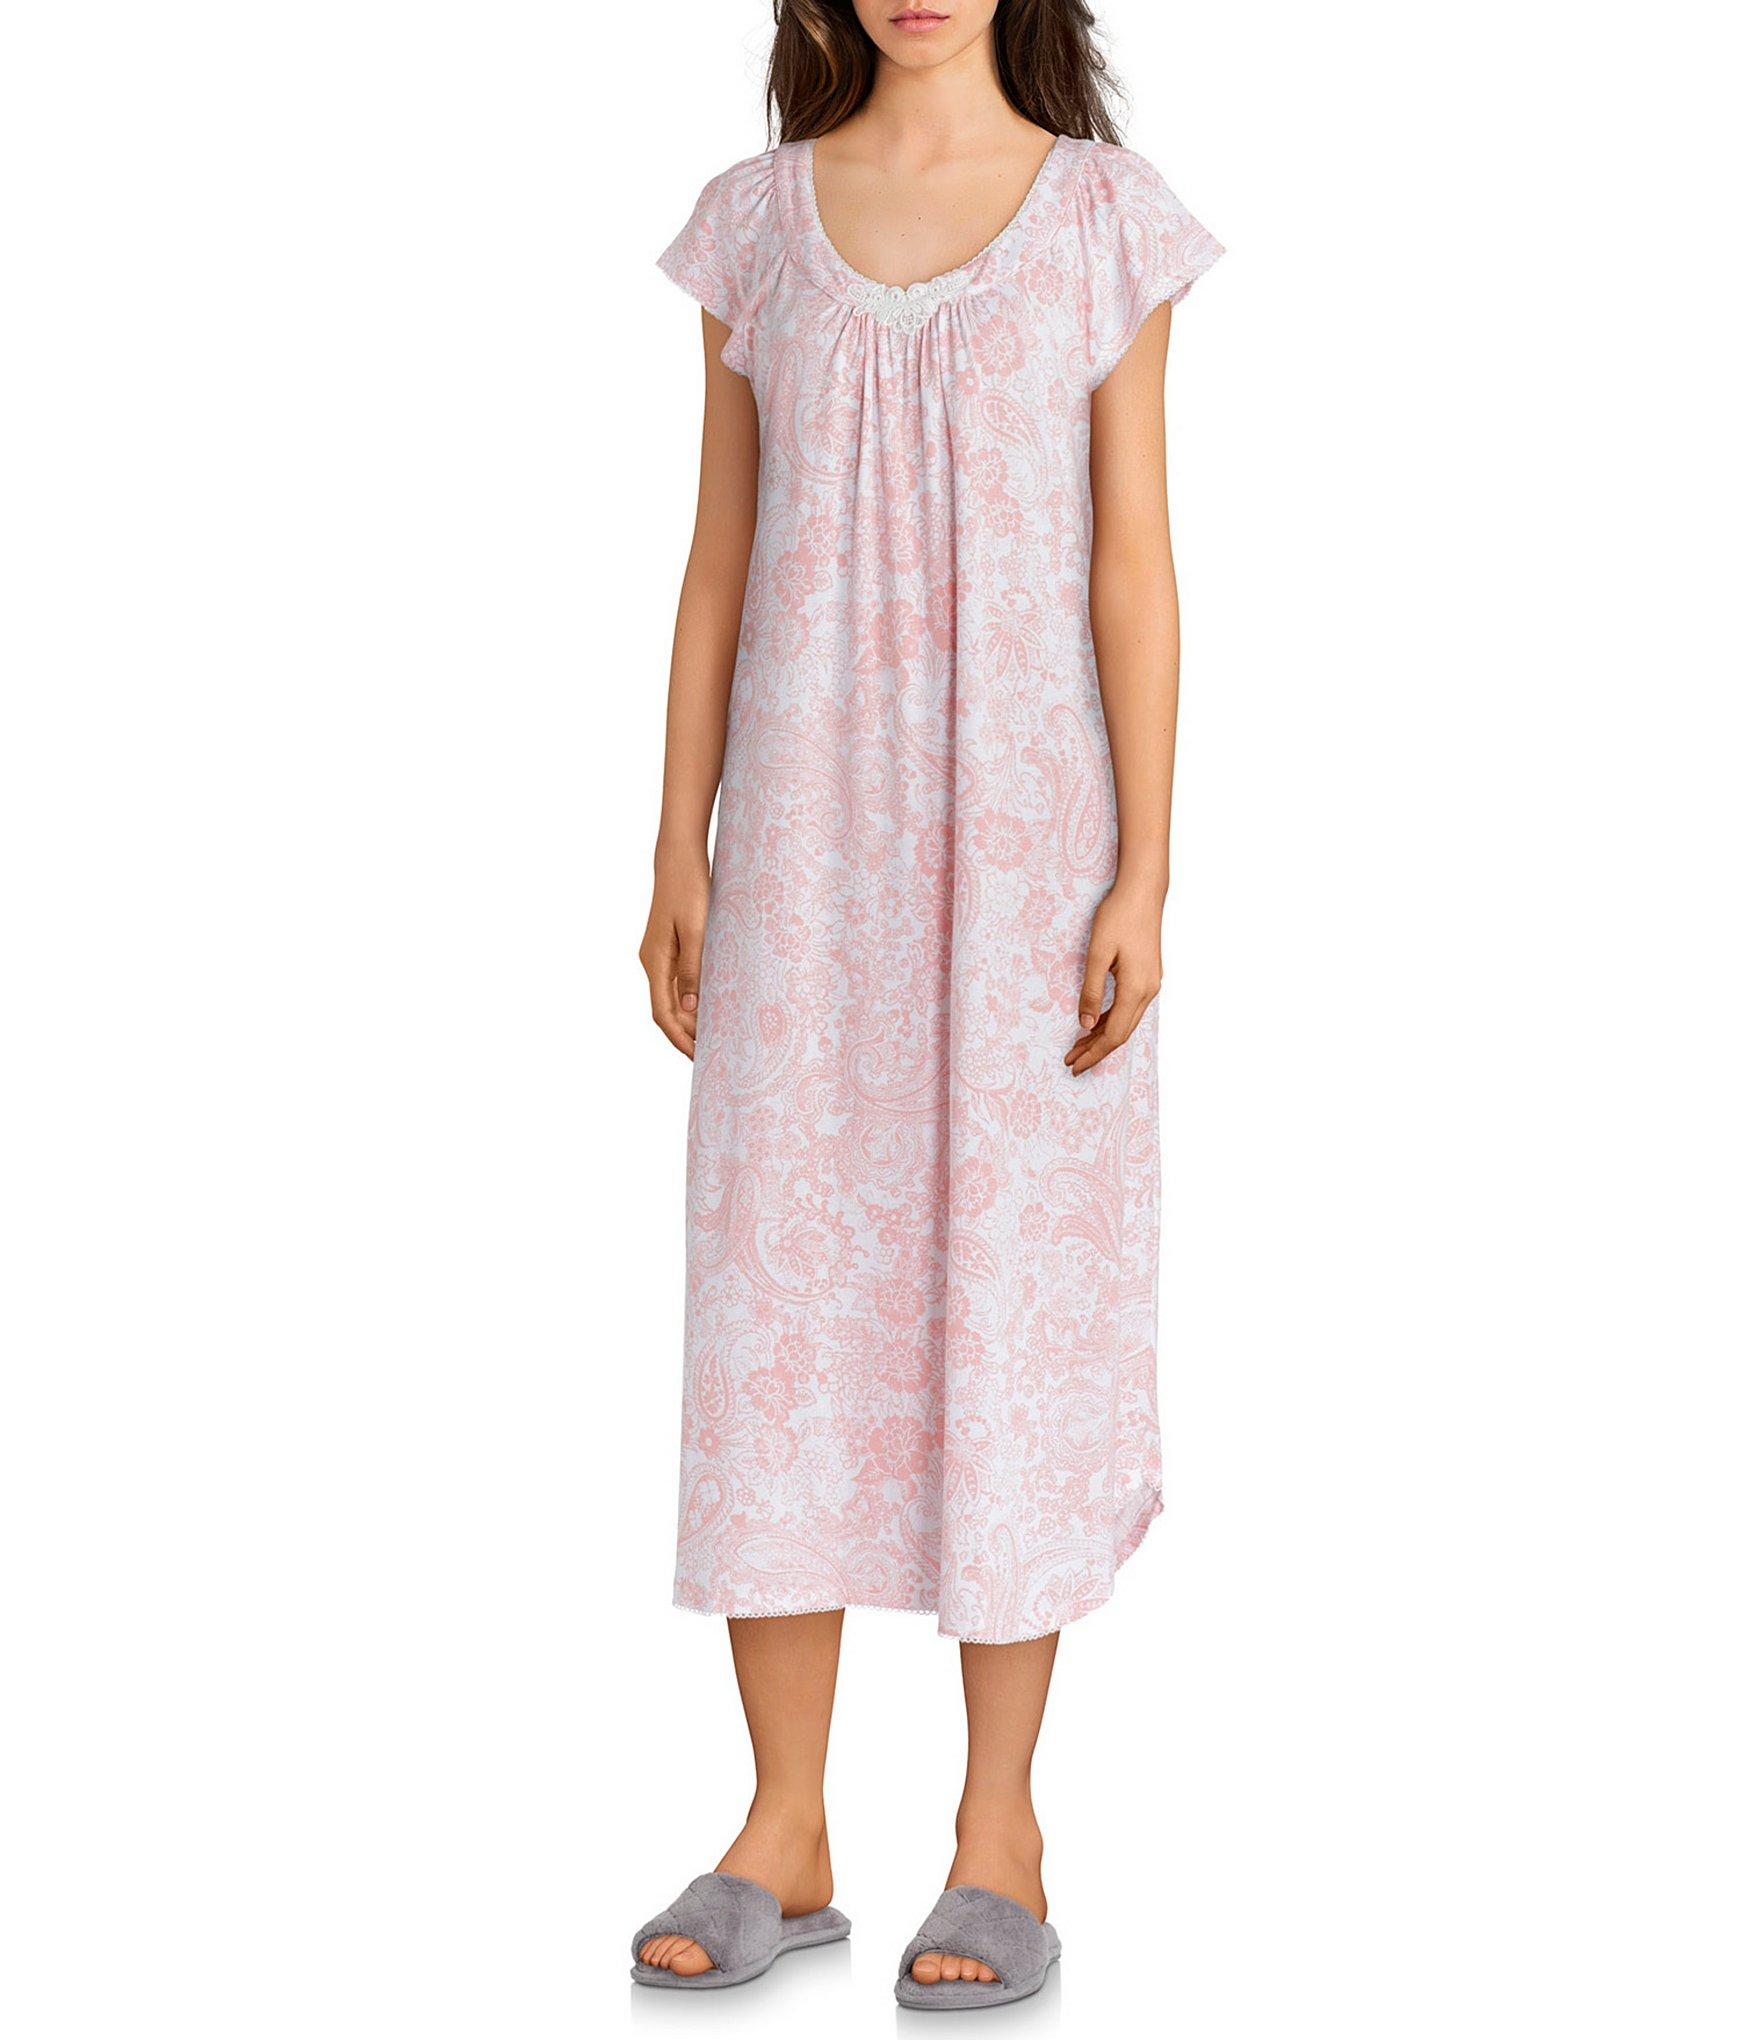 6026b8b725 Lyst - Miss Elaine Luxe Knit Paisley-print Long Nightgown in Pink